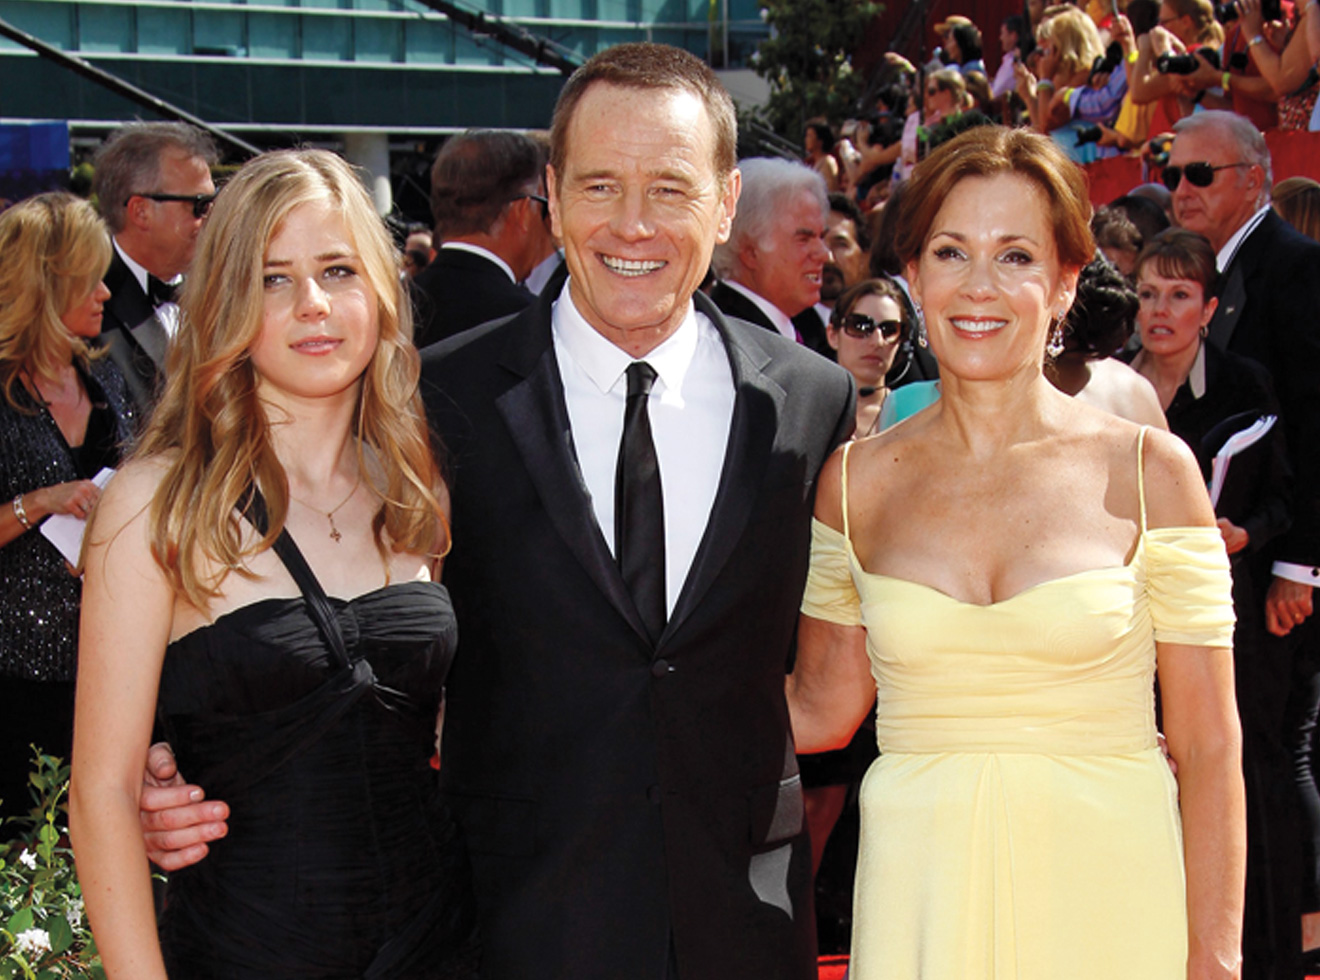 Bryan Cranston with his daughter and wife at the 2010 Emmys, where he won his third consecutive award.